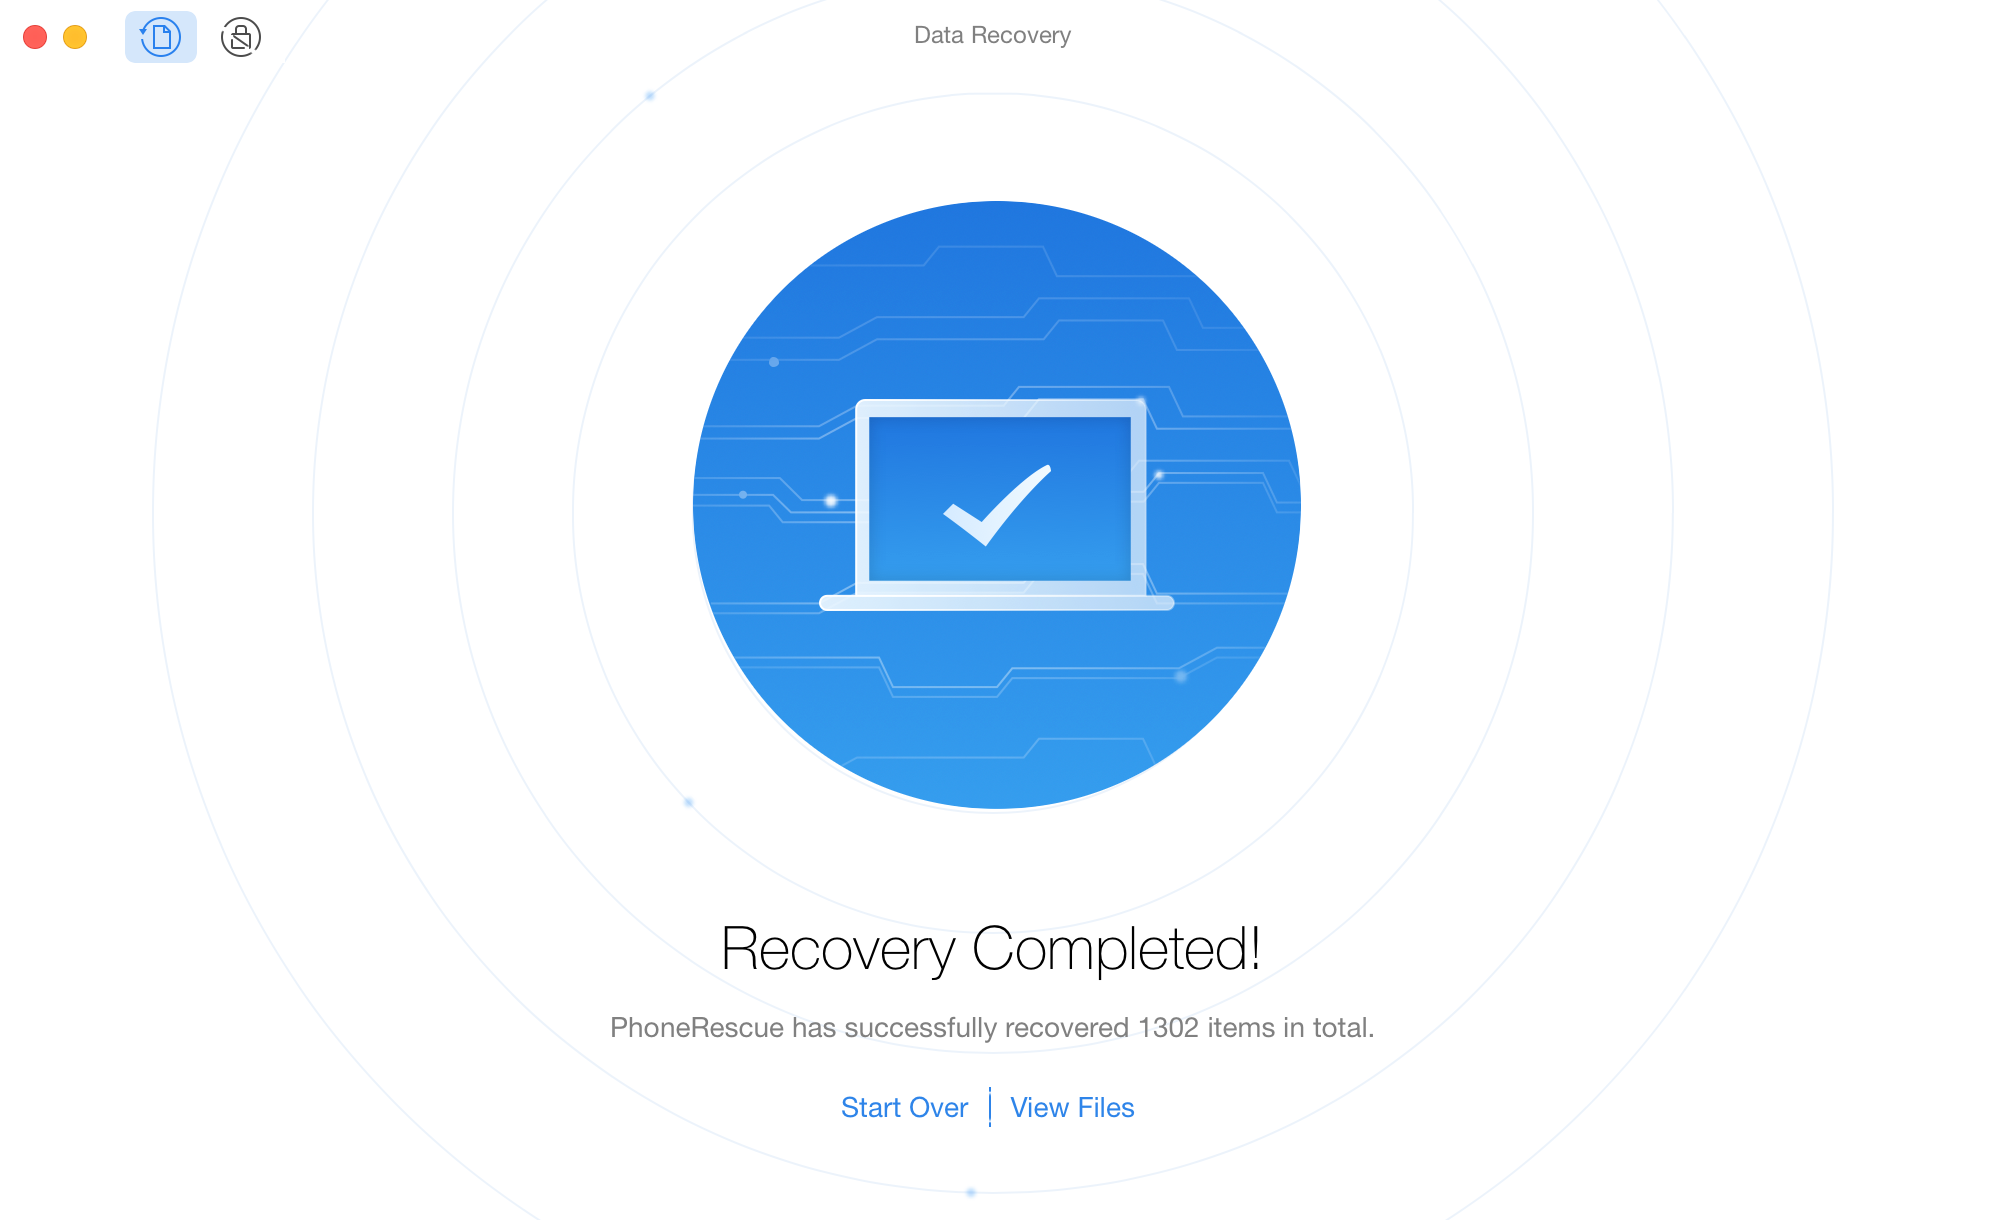 Recovery Process Completes